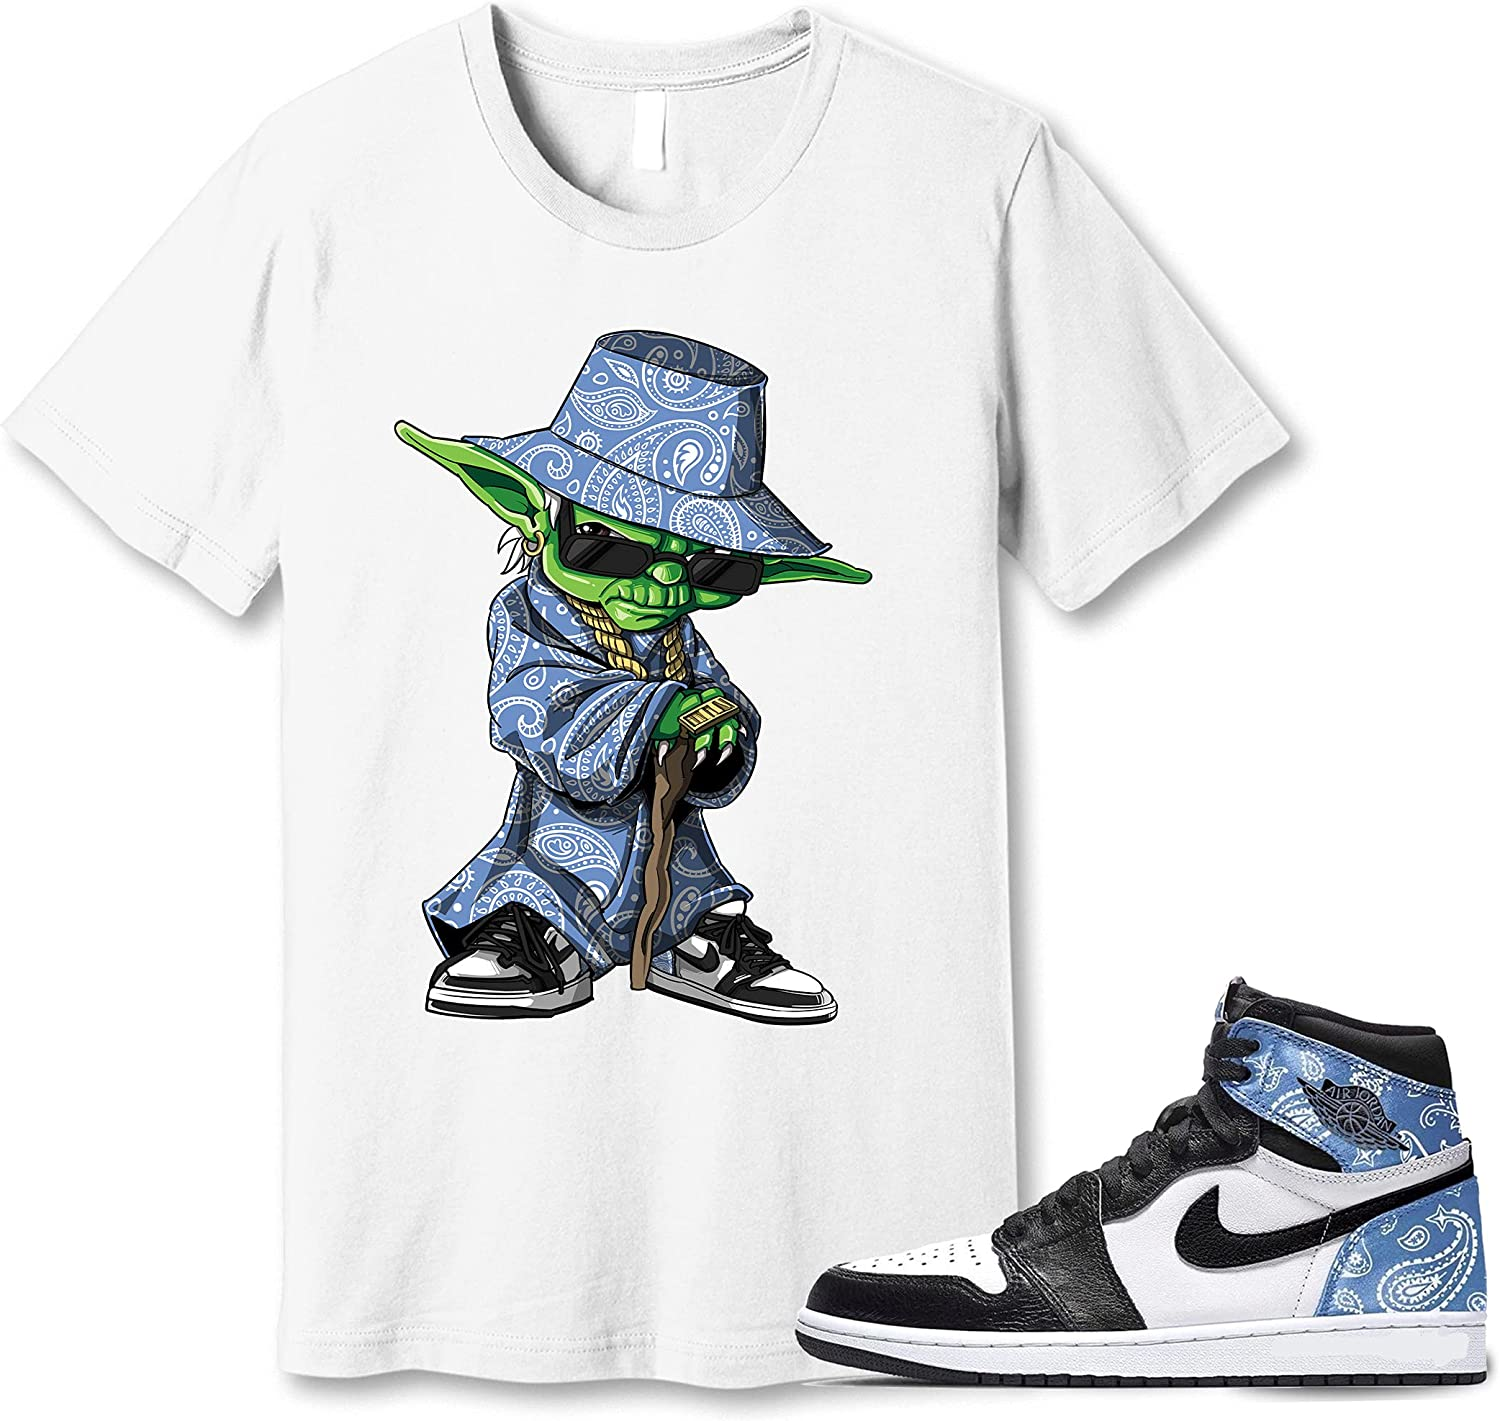 #Yoda White Challenge the lowest price Shirt to Match Jordan Sneaker for Men 1 Gift Paisley Attention brand